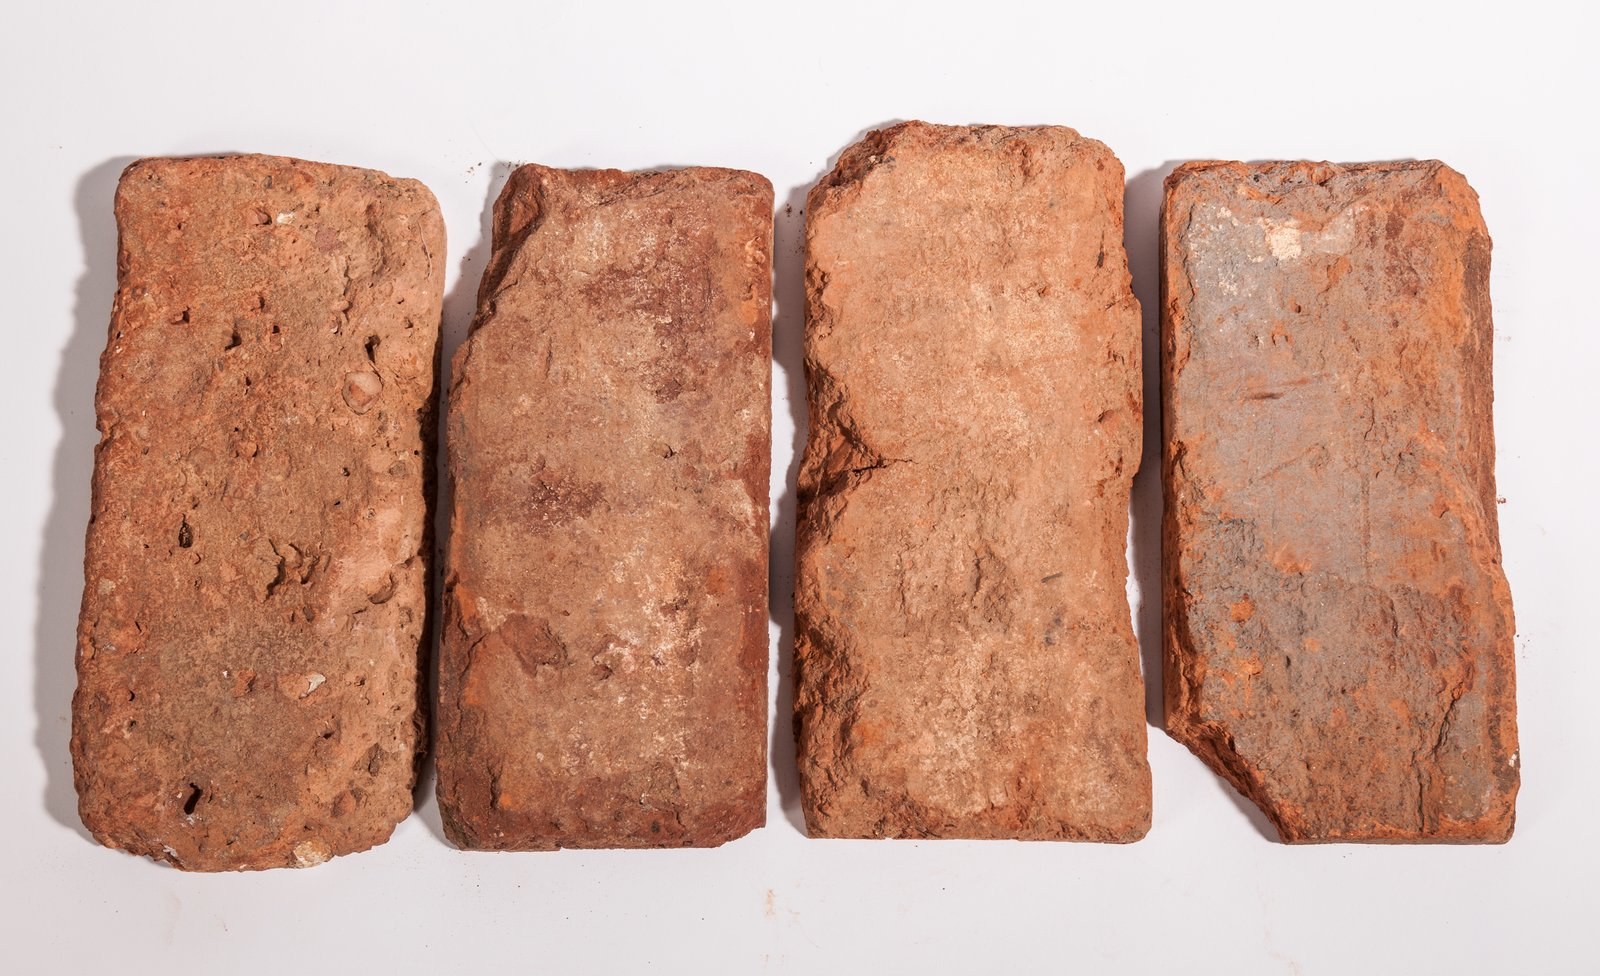 Vintage Bricks thin brick tiles - genuine reclaimed from salvaged bricks www.VintageBricks.com  Photo 5 of 10 in Revealing the Pros and Cons of Exposed Brick and How to Take Care of It